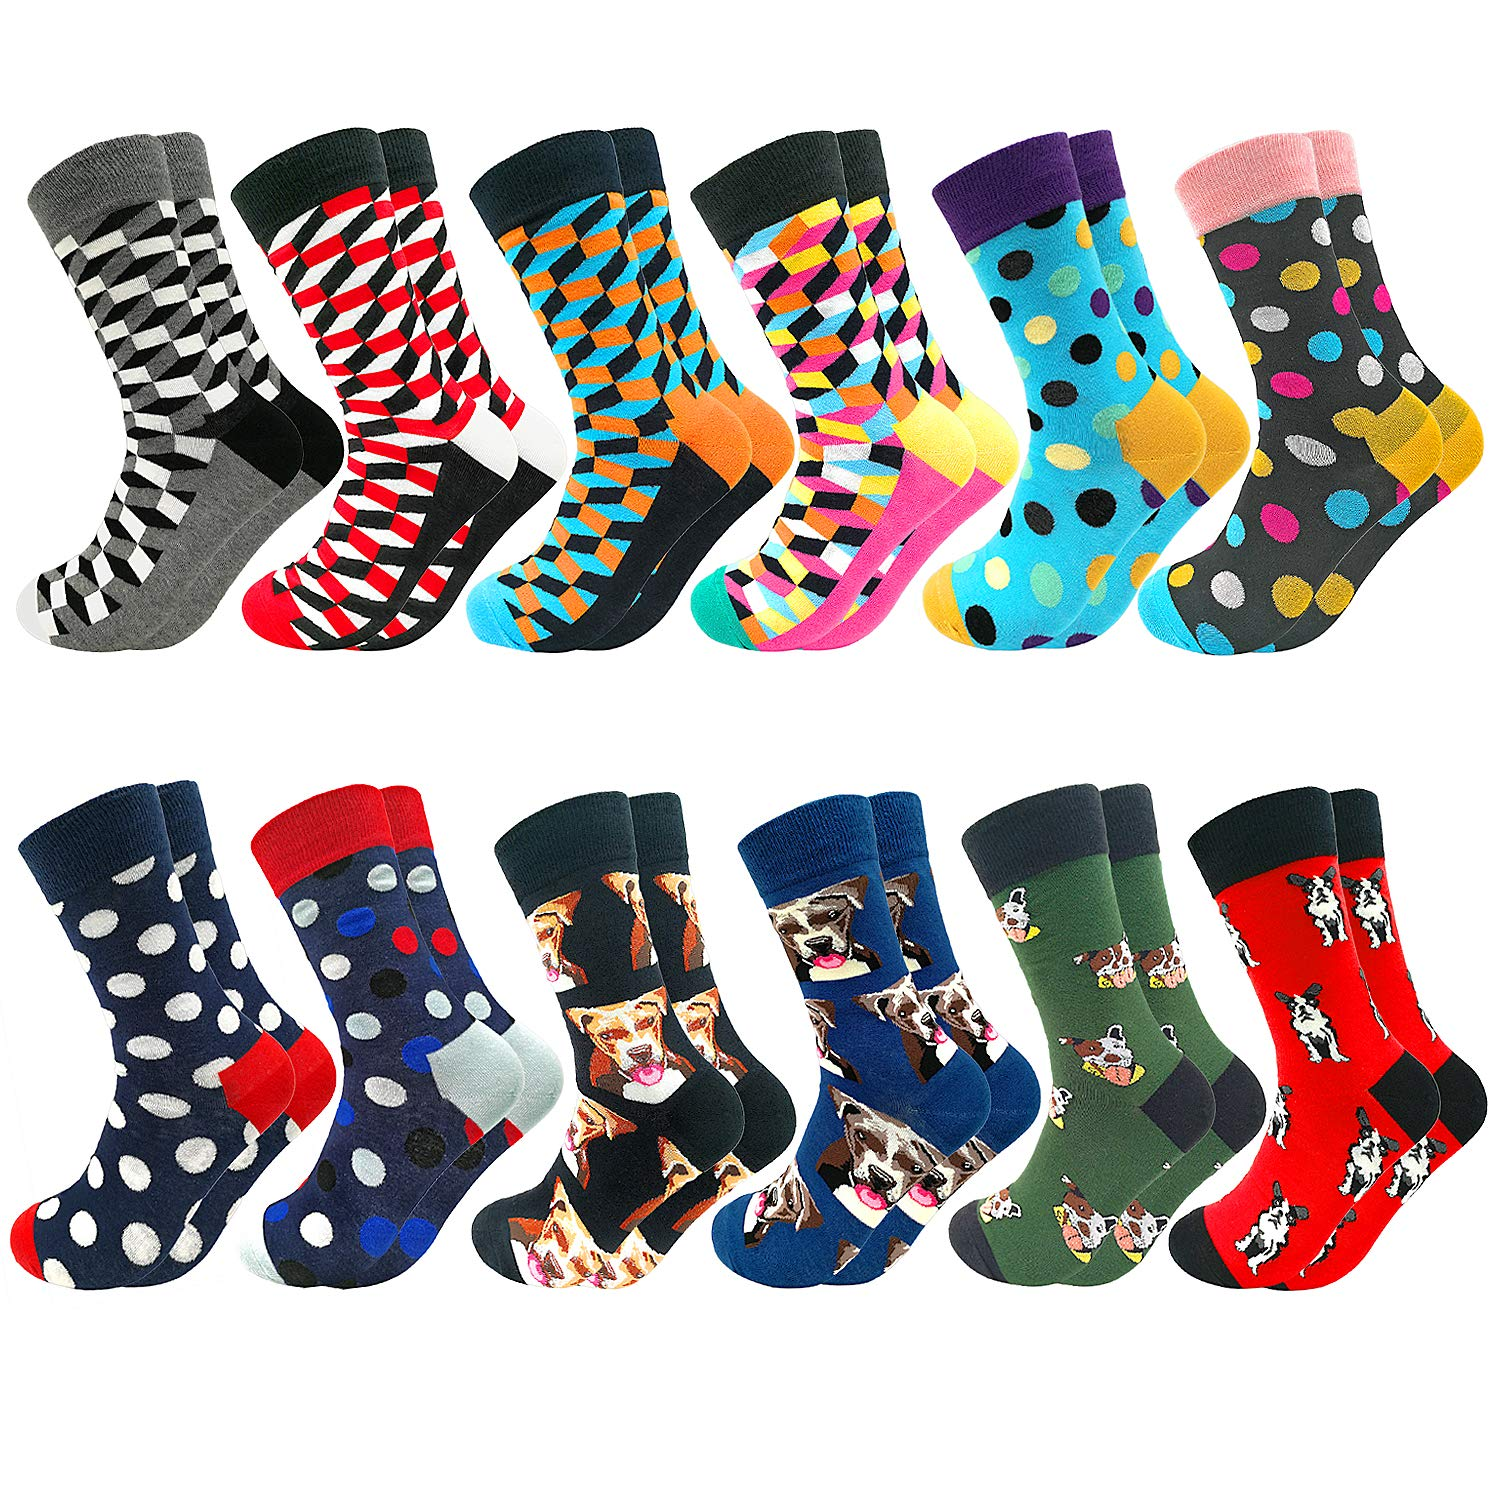 Fun Colorful Socks Patterned Funky Happy Crew Sock Combed Cotton Stockings Packs